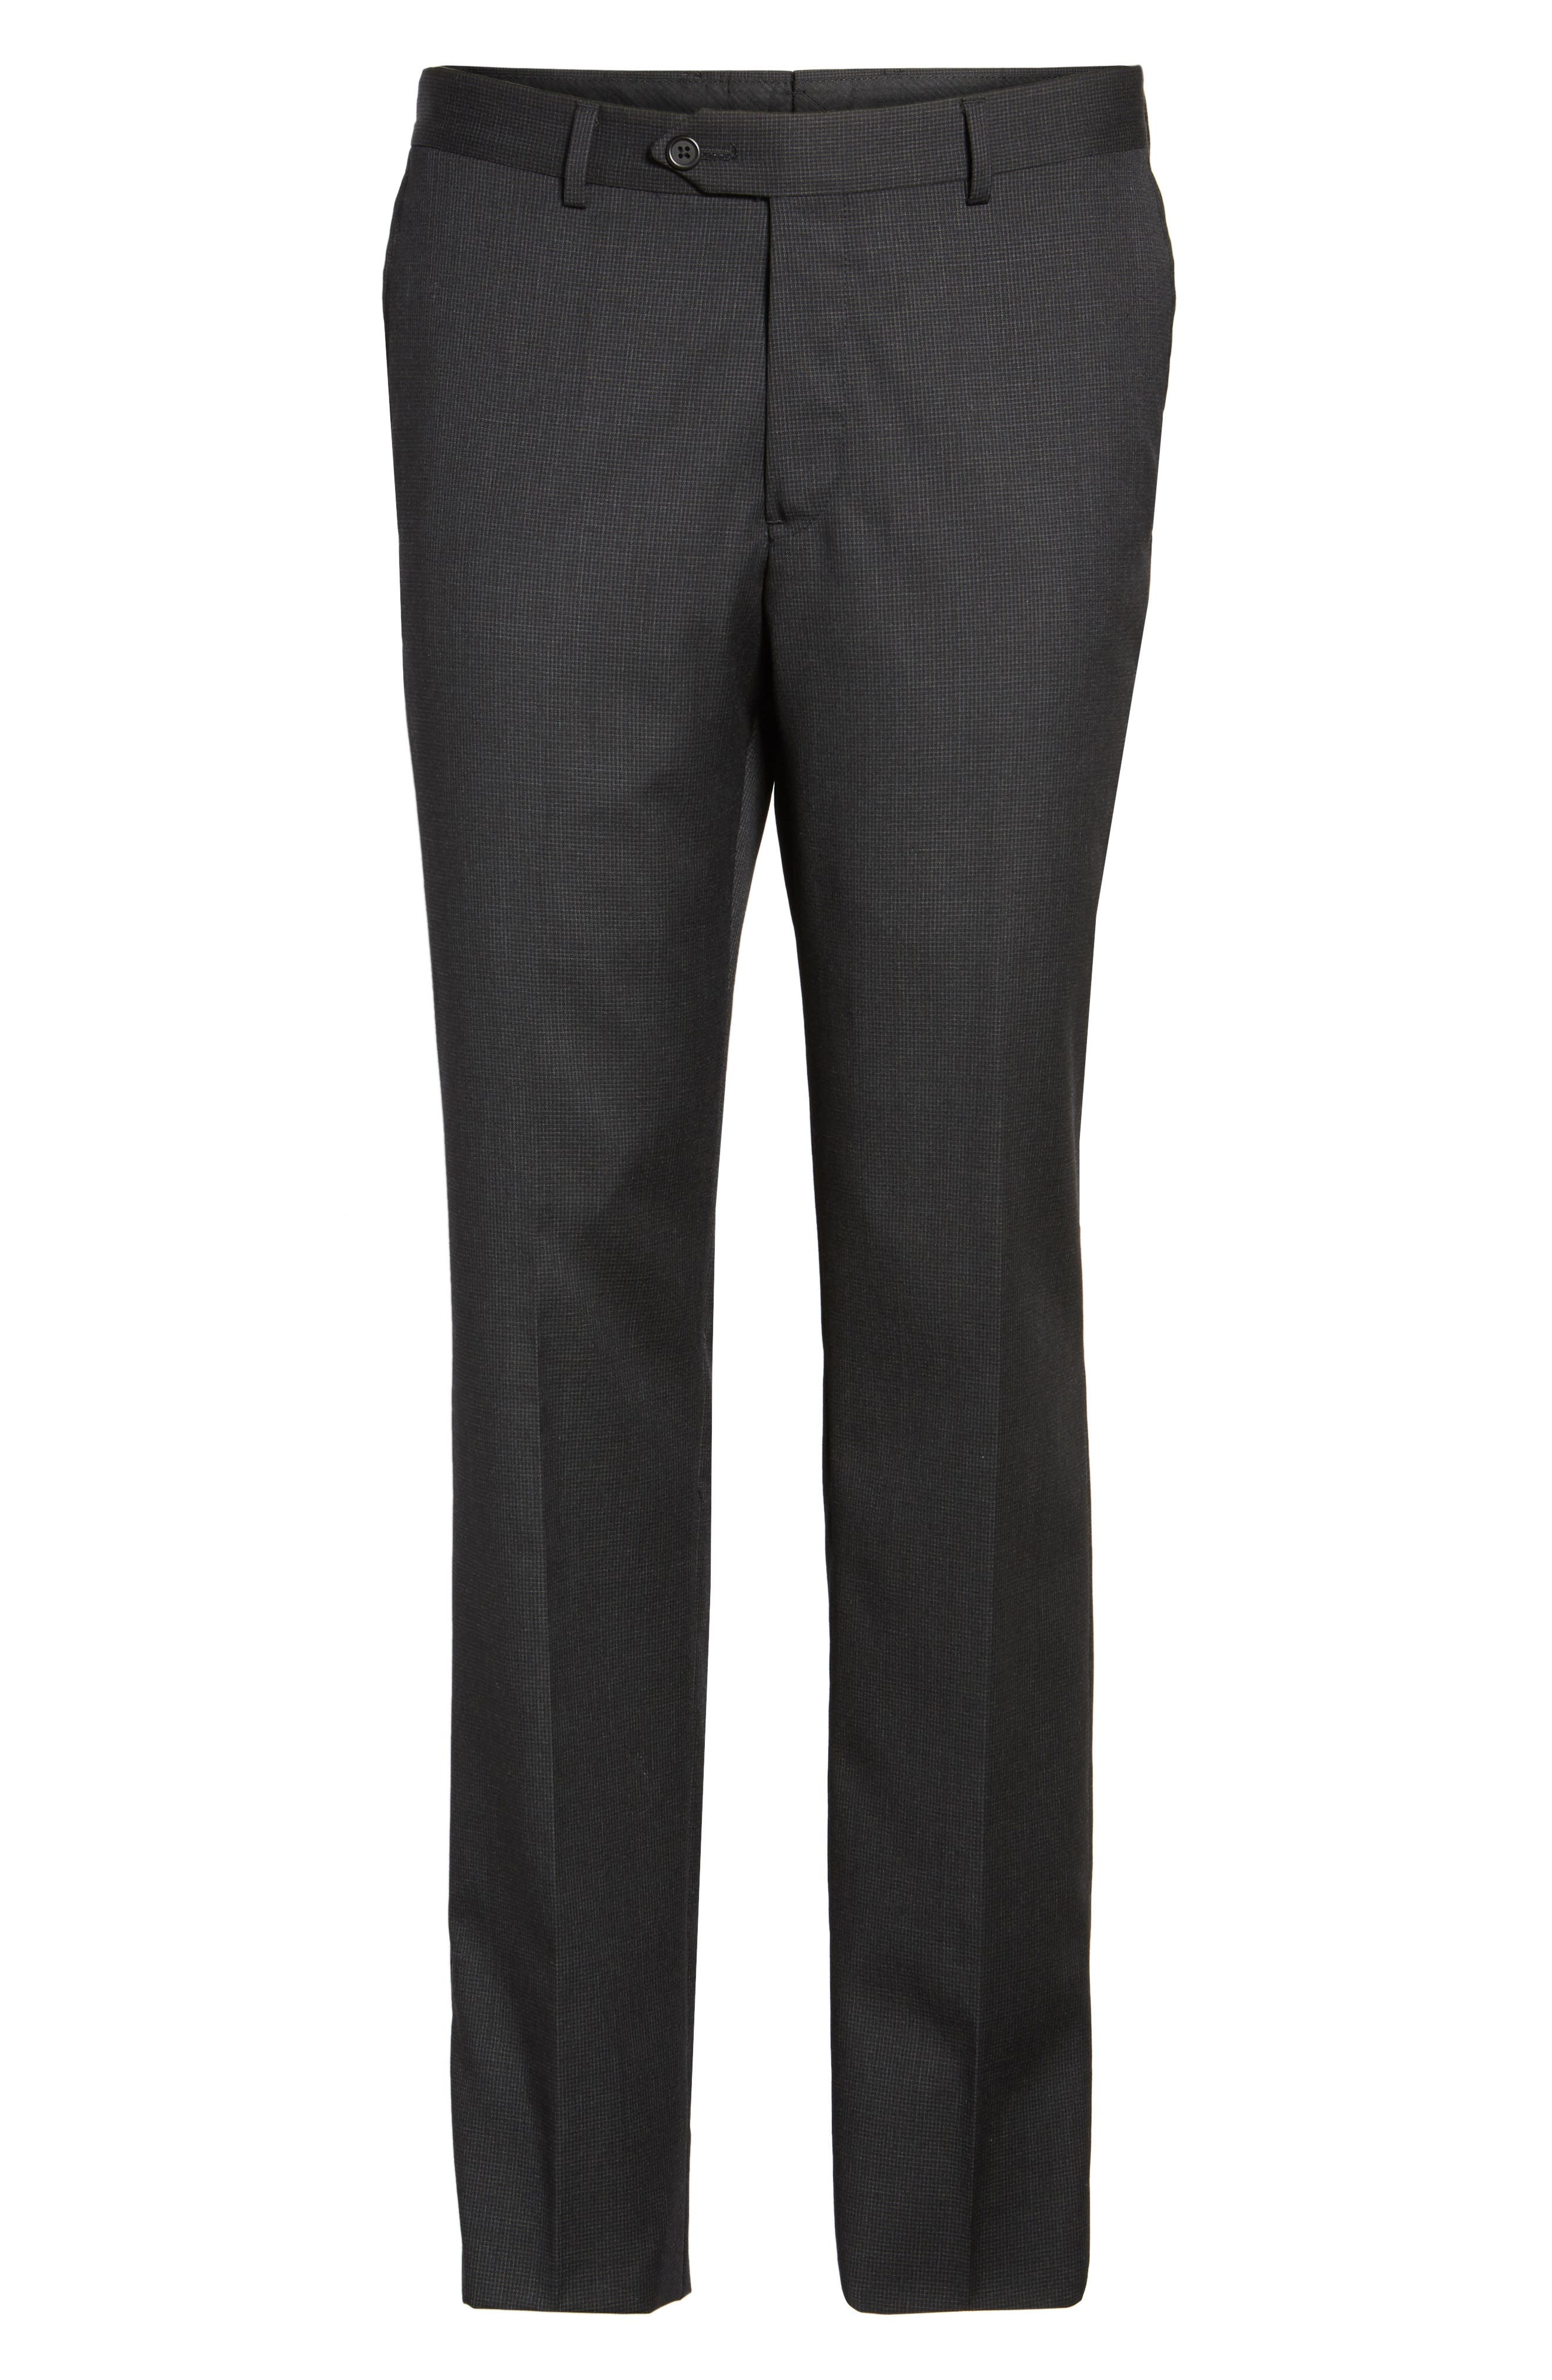 Flat Front Check Wool Trousers,                             Alternate thumbnail 6, color,                             001